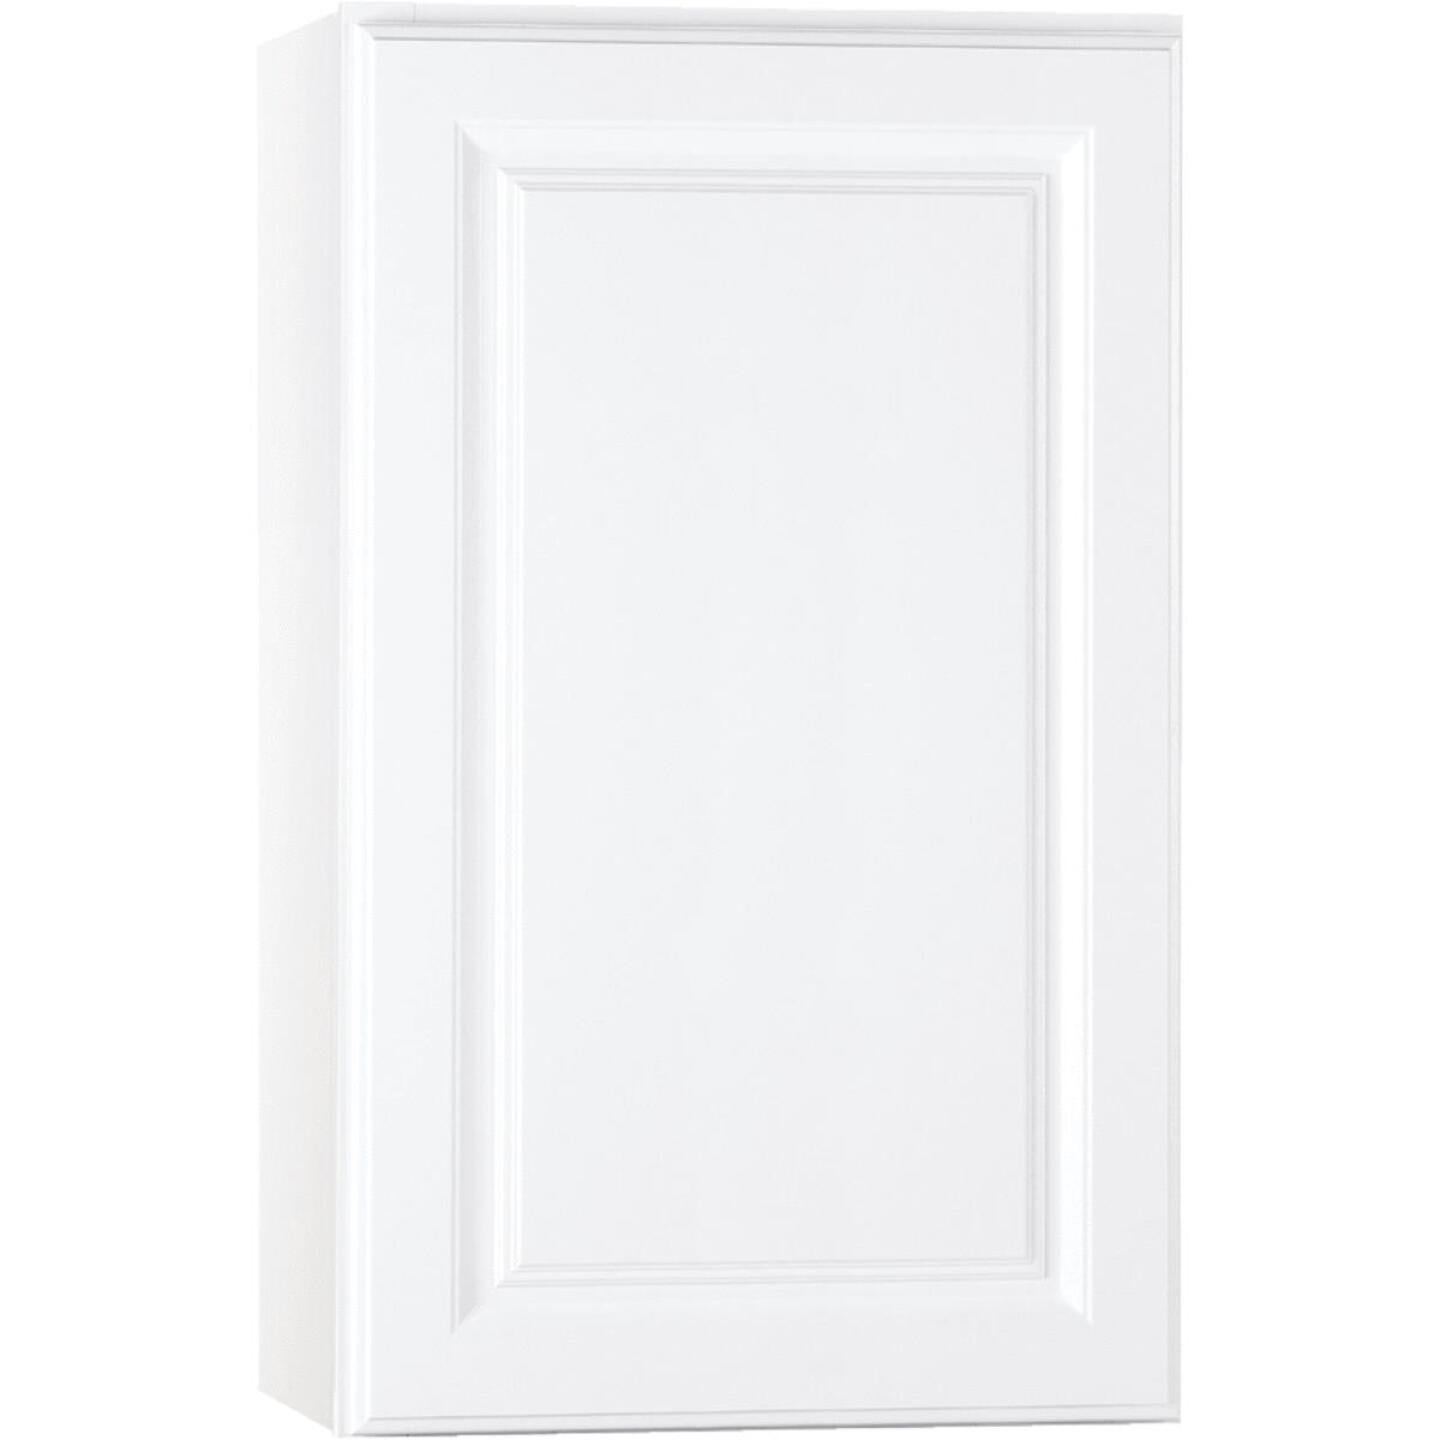 Continental Cabinets Hamilton 18 In. W x 30 In. H x 12 In. D Satin White Maple Wall Kitchen Cabinet Image 2